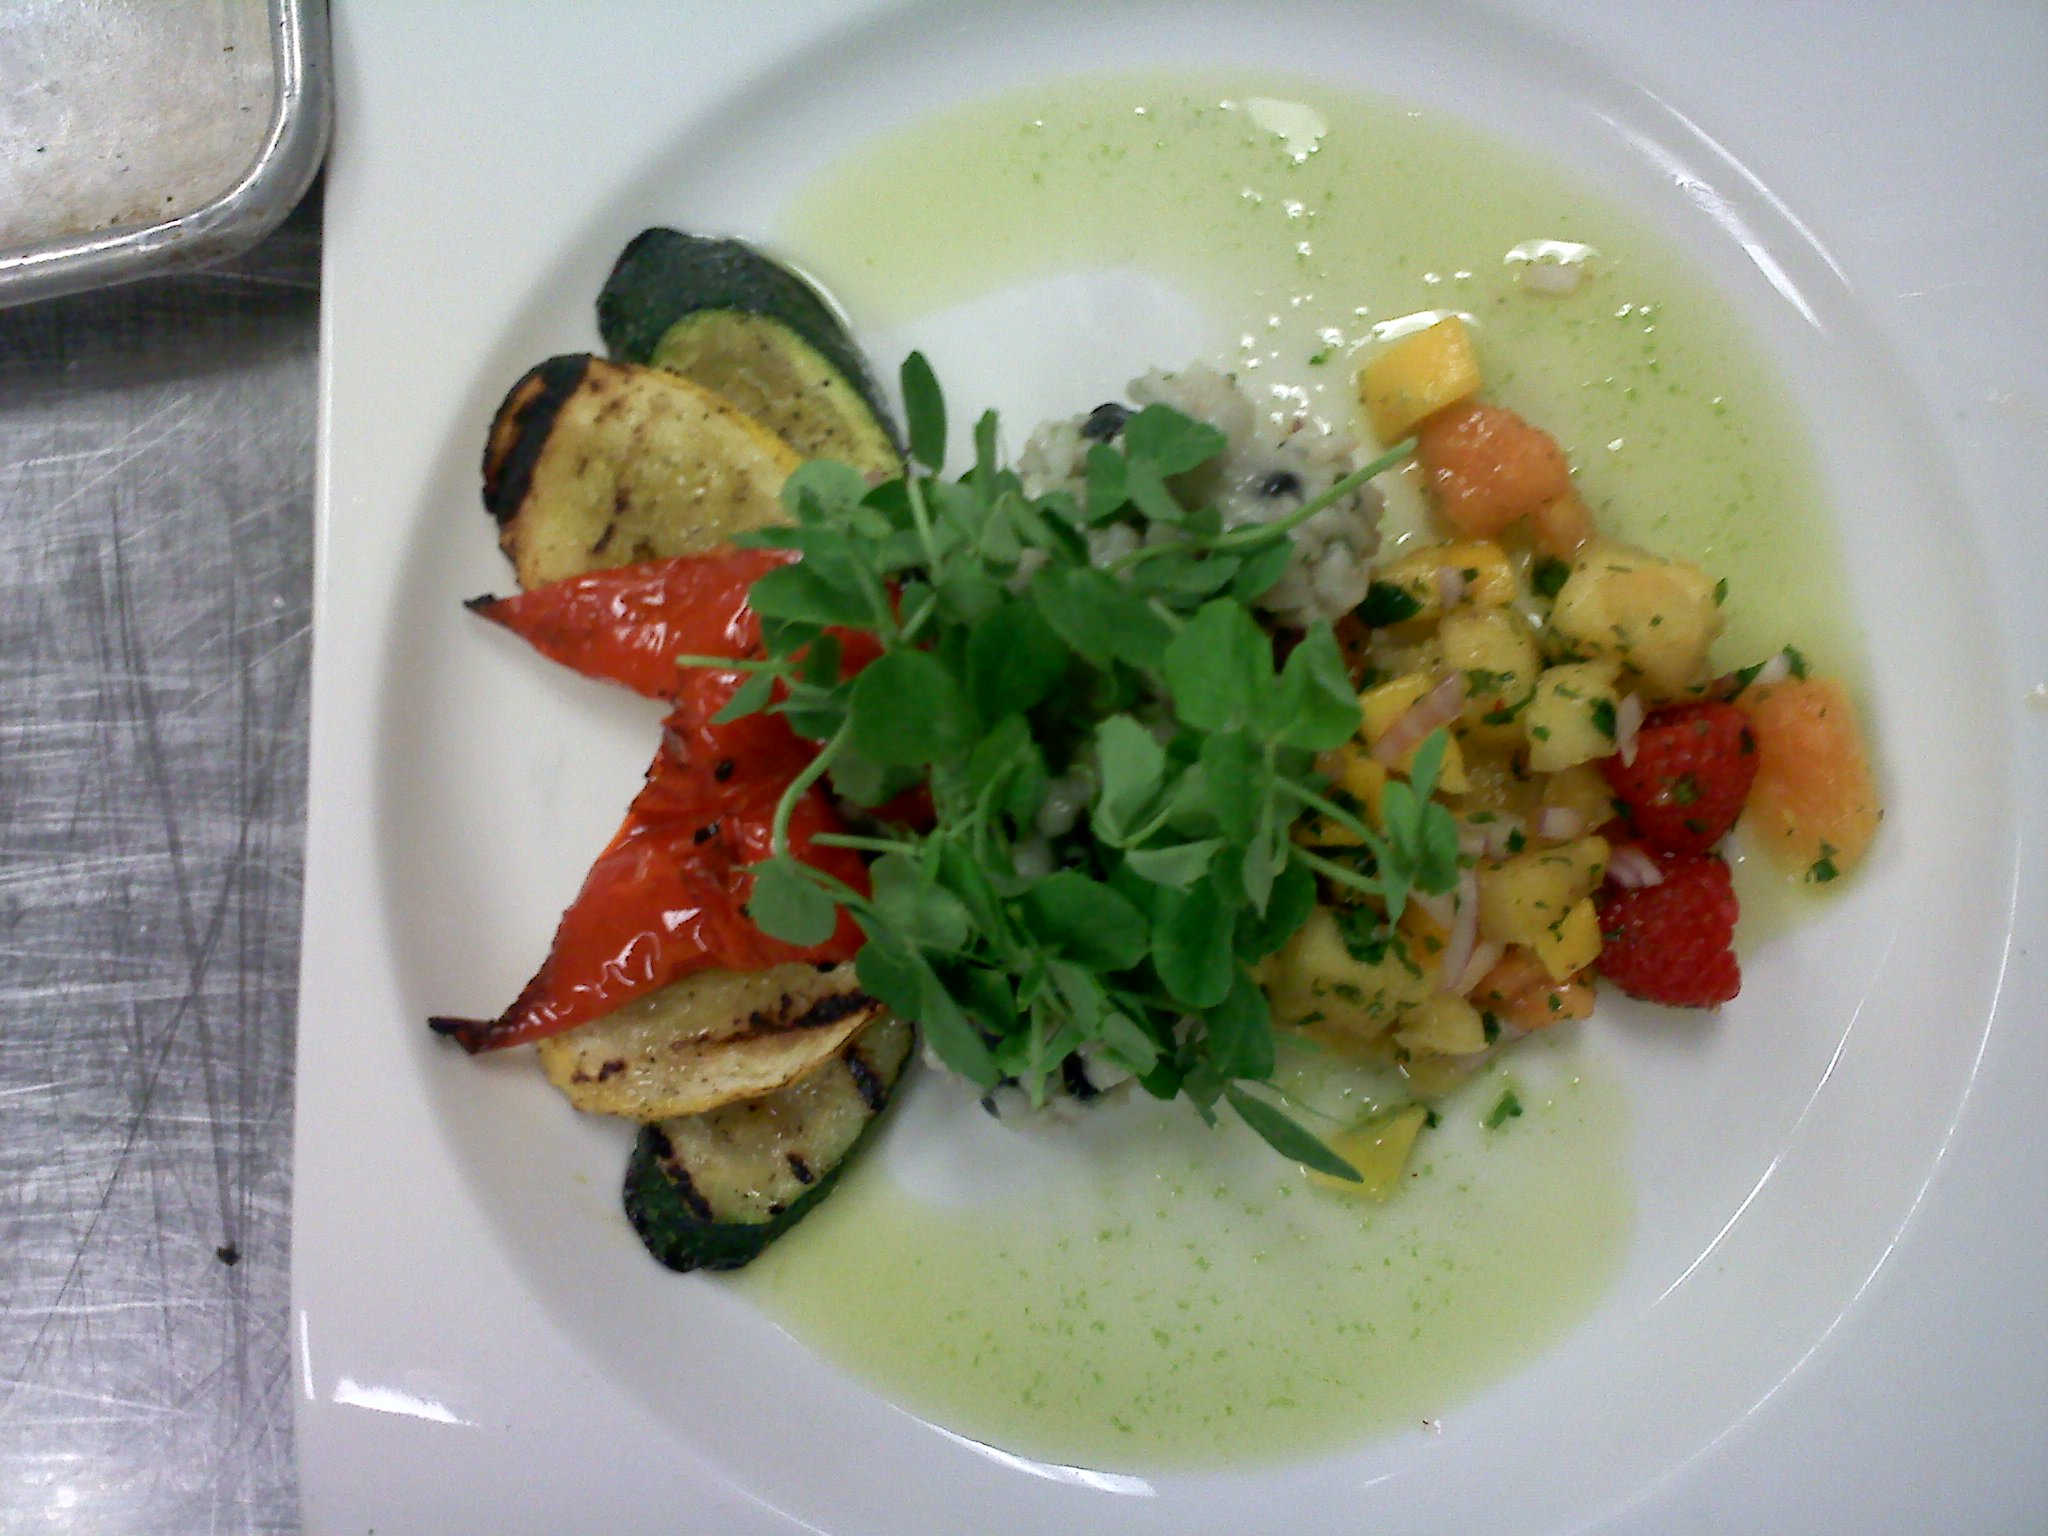 everett ma :: coconut rissotto with a passion fruit salsa grilled veg and scallion oil topped with pea greens